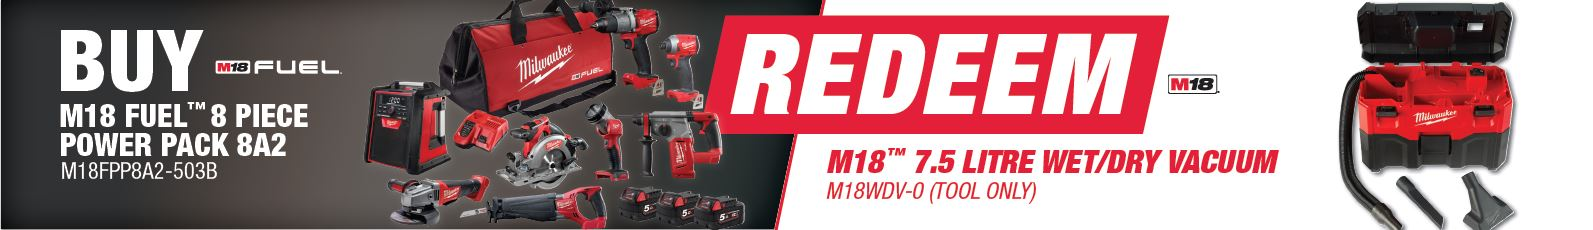 Buy Milwaukee M18FPP8A2-503B and Redeem M18WDV-0